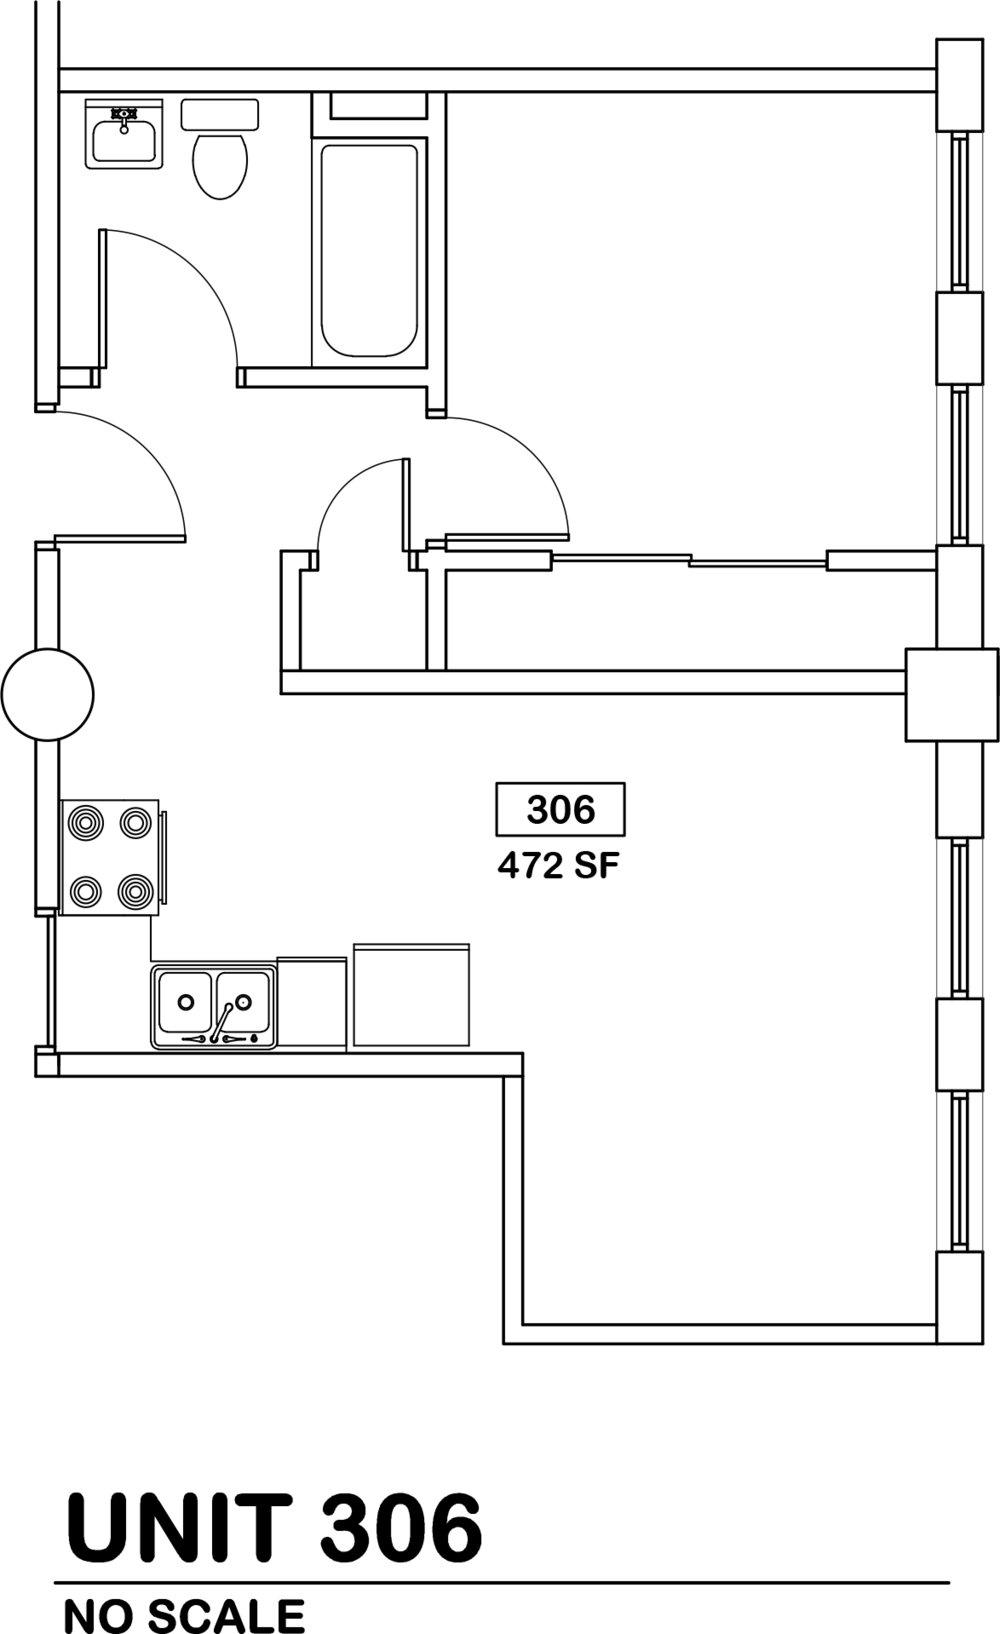 1 bed / 1 bath   $570 / 472 sq ft